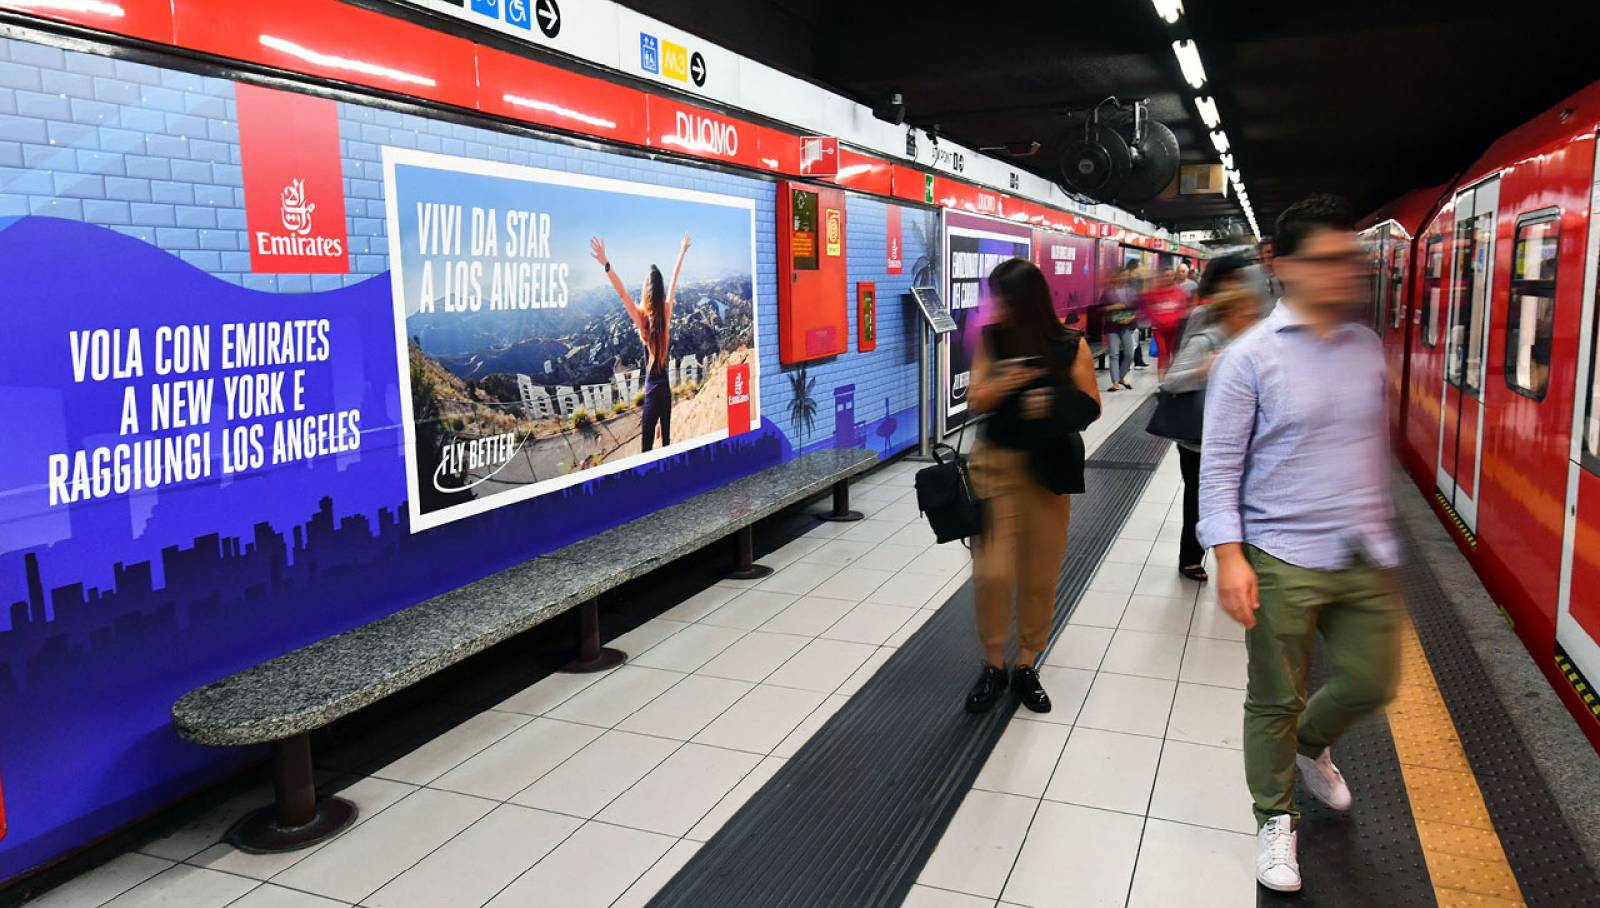 Outdoor advertising Milan IGPDecaux Station Domination for Emirates